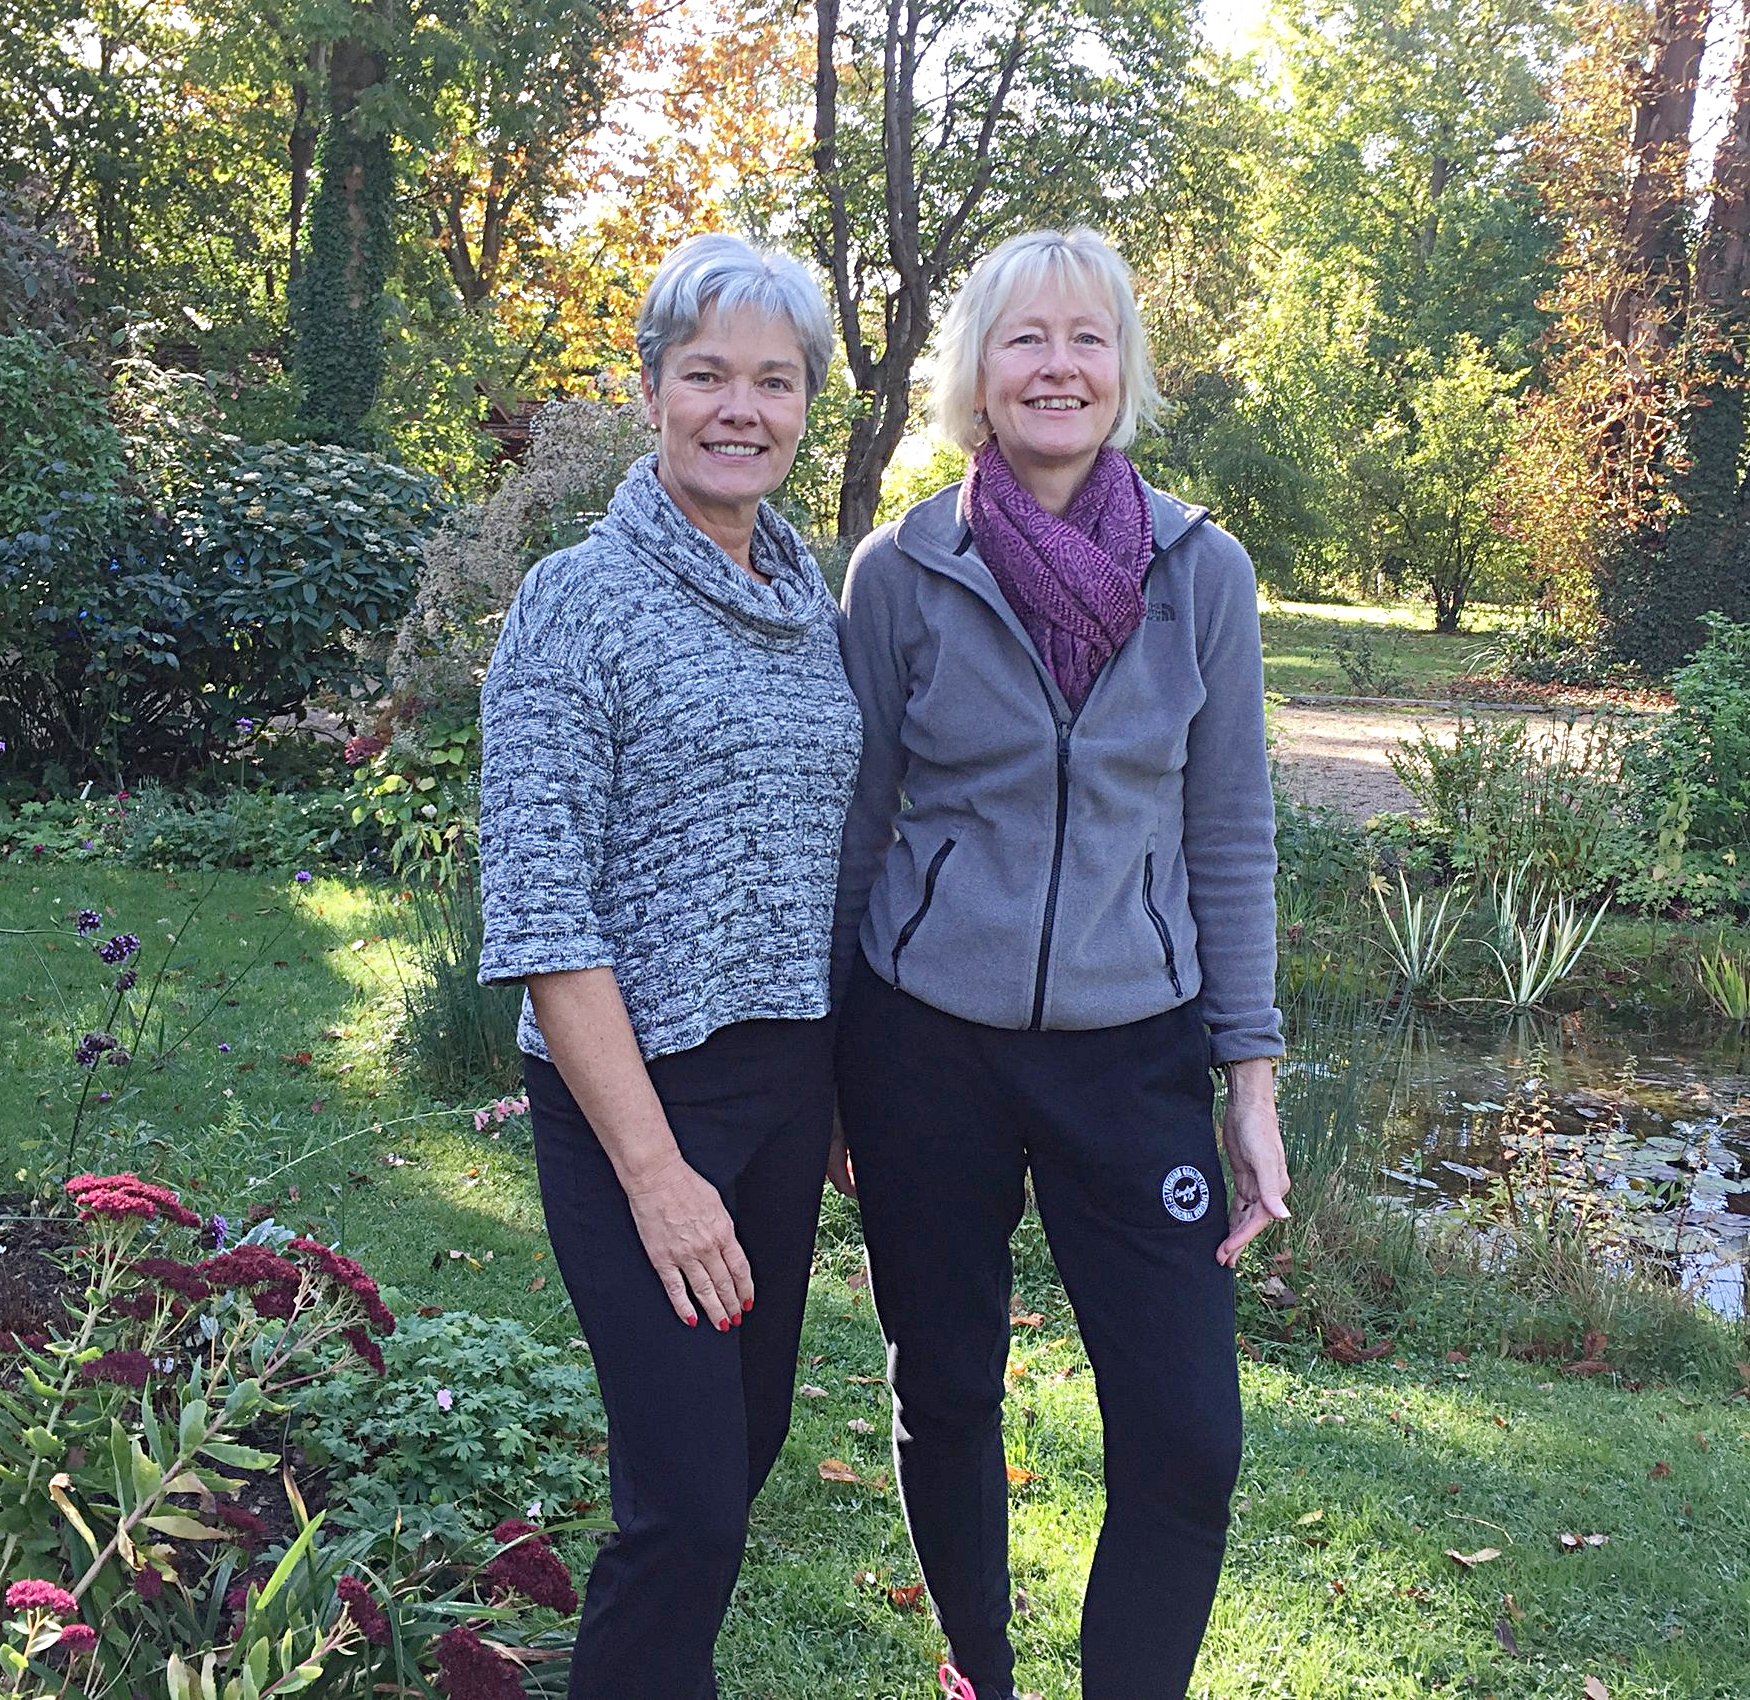 Viv Ward and Sue Dorrell are both experienced teachers -